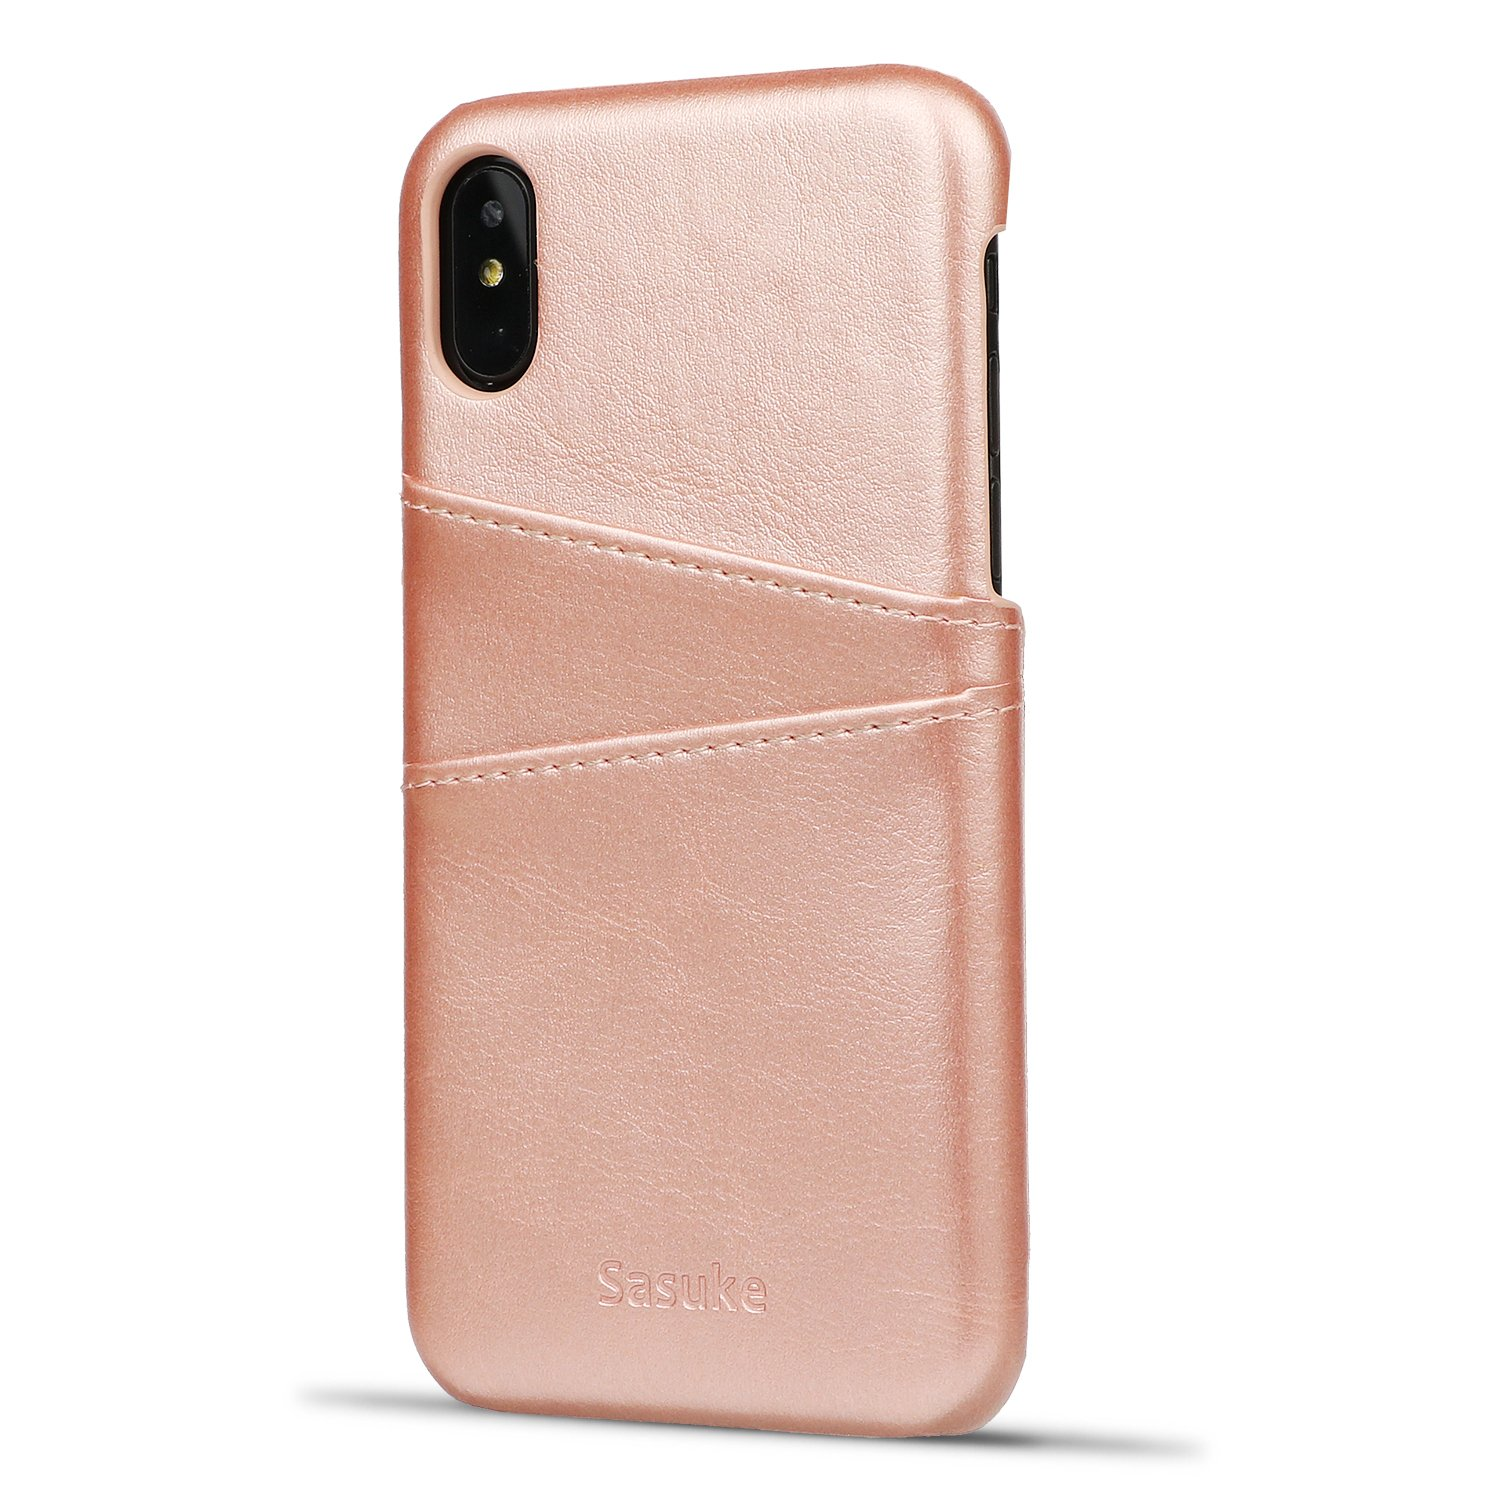 iPhone X Case,Leather Cover Card Case For iPhone X, Premium PU Leather Case with Business Credit Card Slot Holder, - Ultra Slim Professional Executive Snap On Cover with 2 Card Holder Slots (Rosegold)